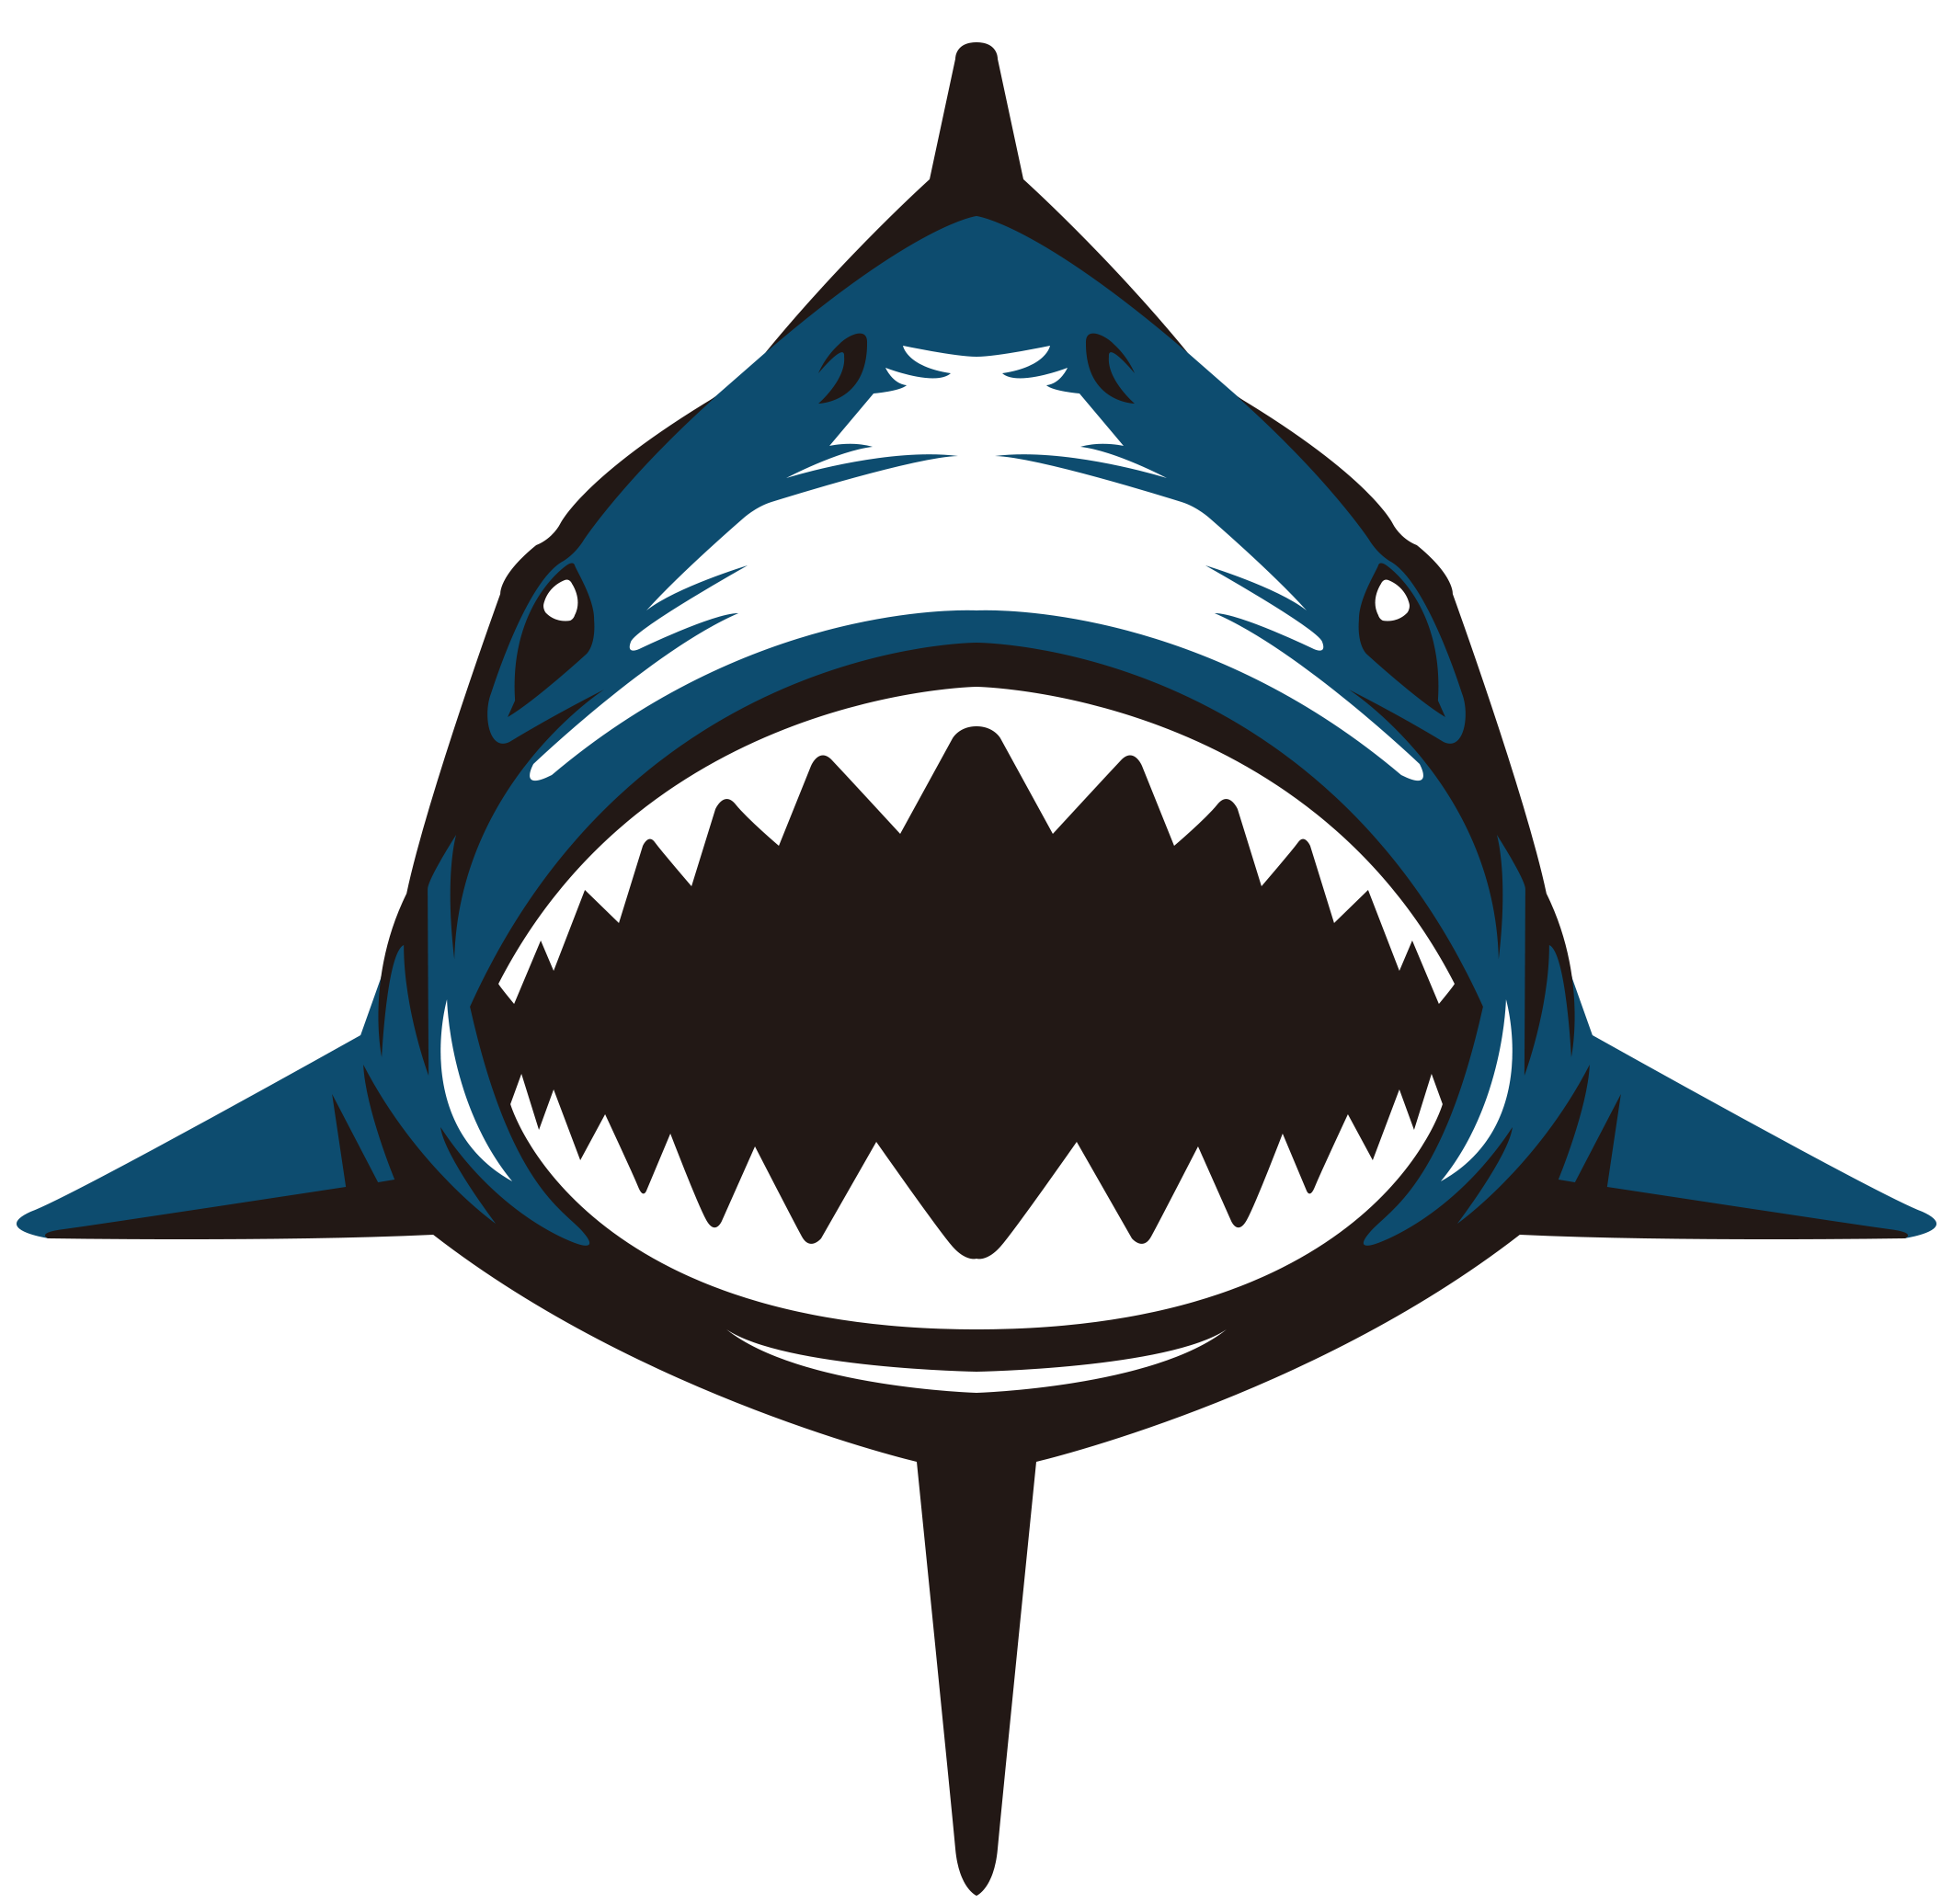 2124x2071 15 Vector Sharks Shark Jaws For Free Download On Mbtskoudsalg